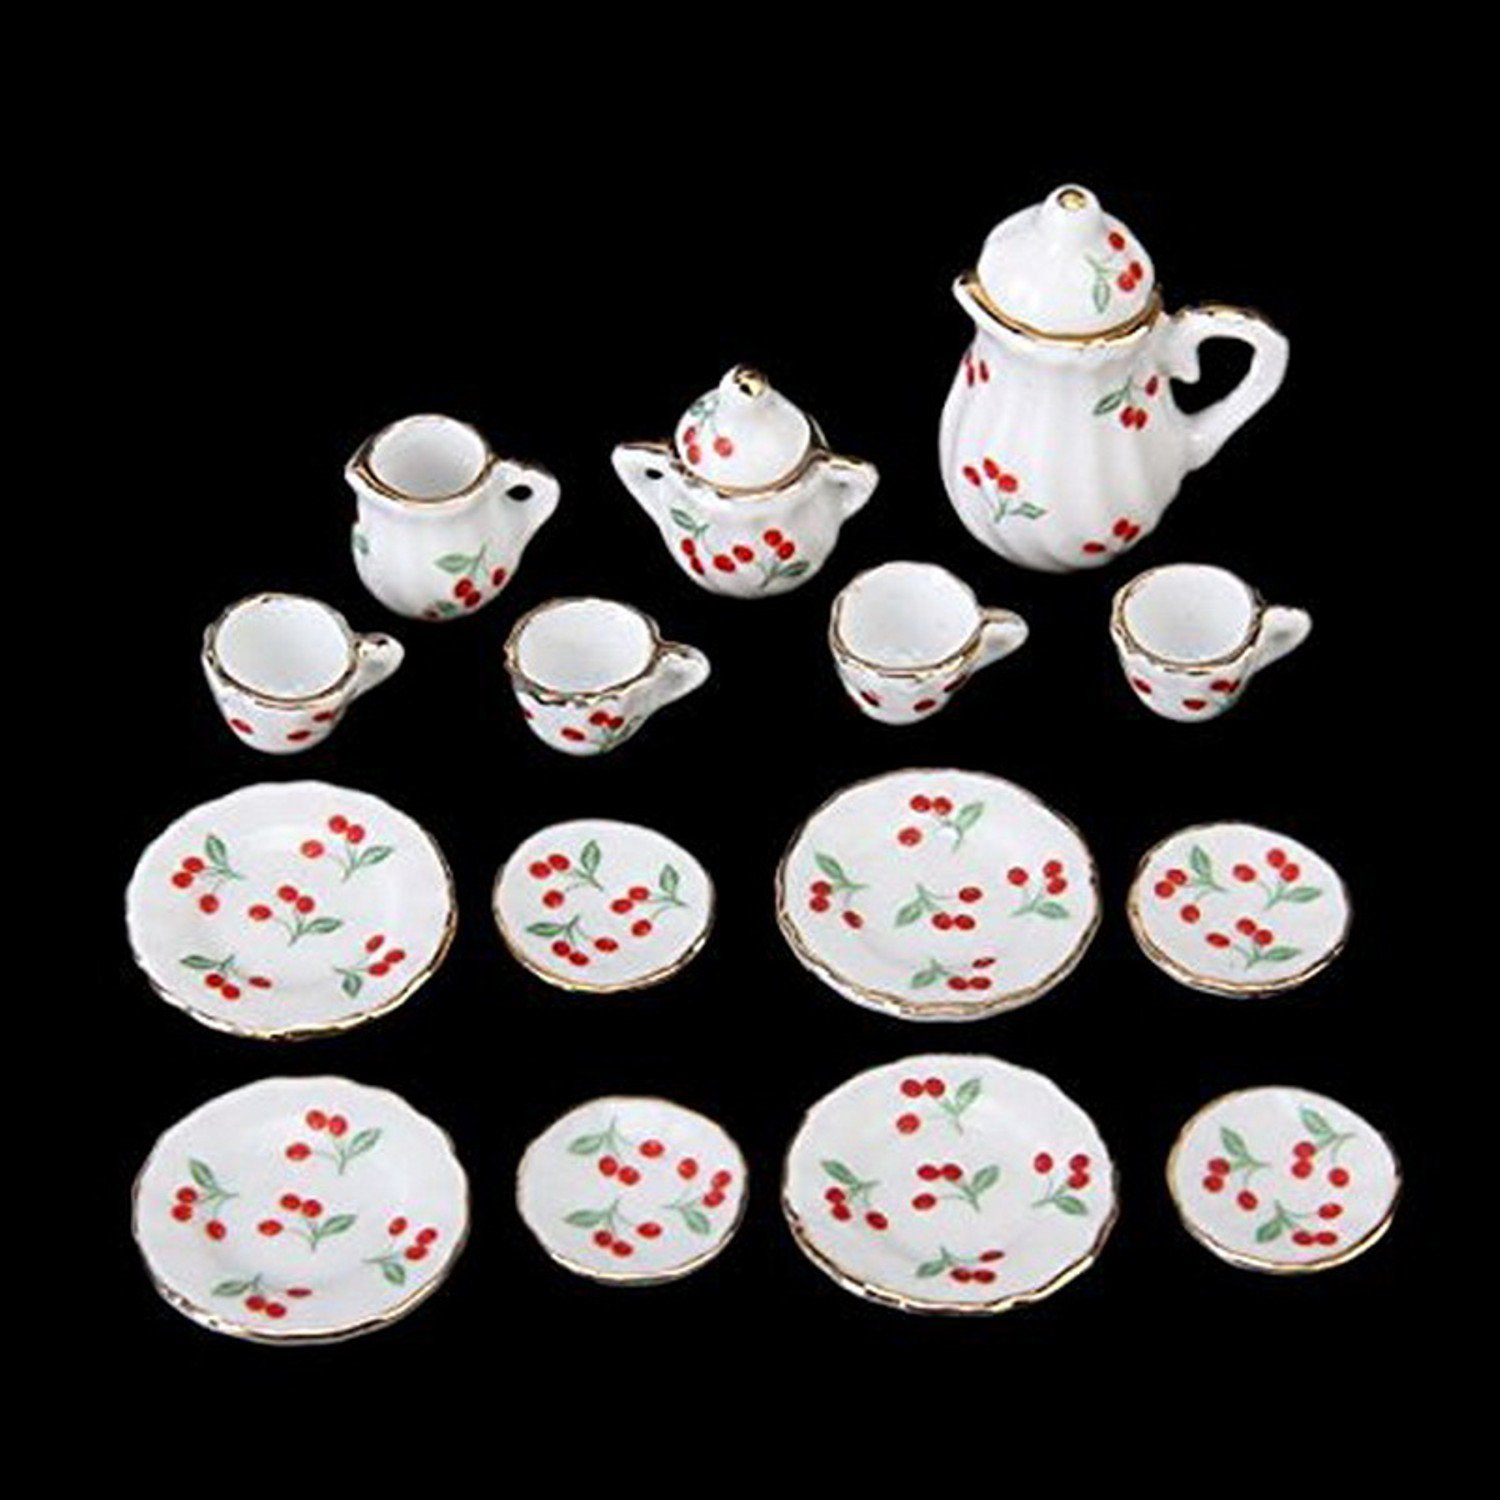 15pcs Dollhouse Miniature Dining Ware Tea Set White with Flower